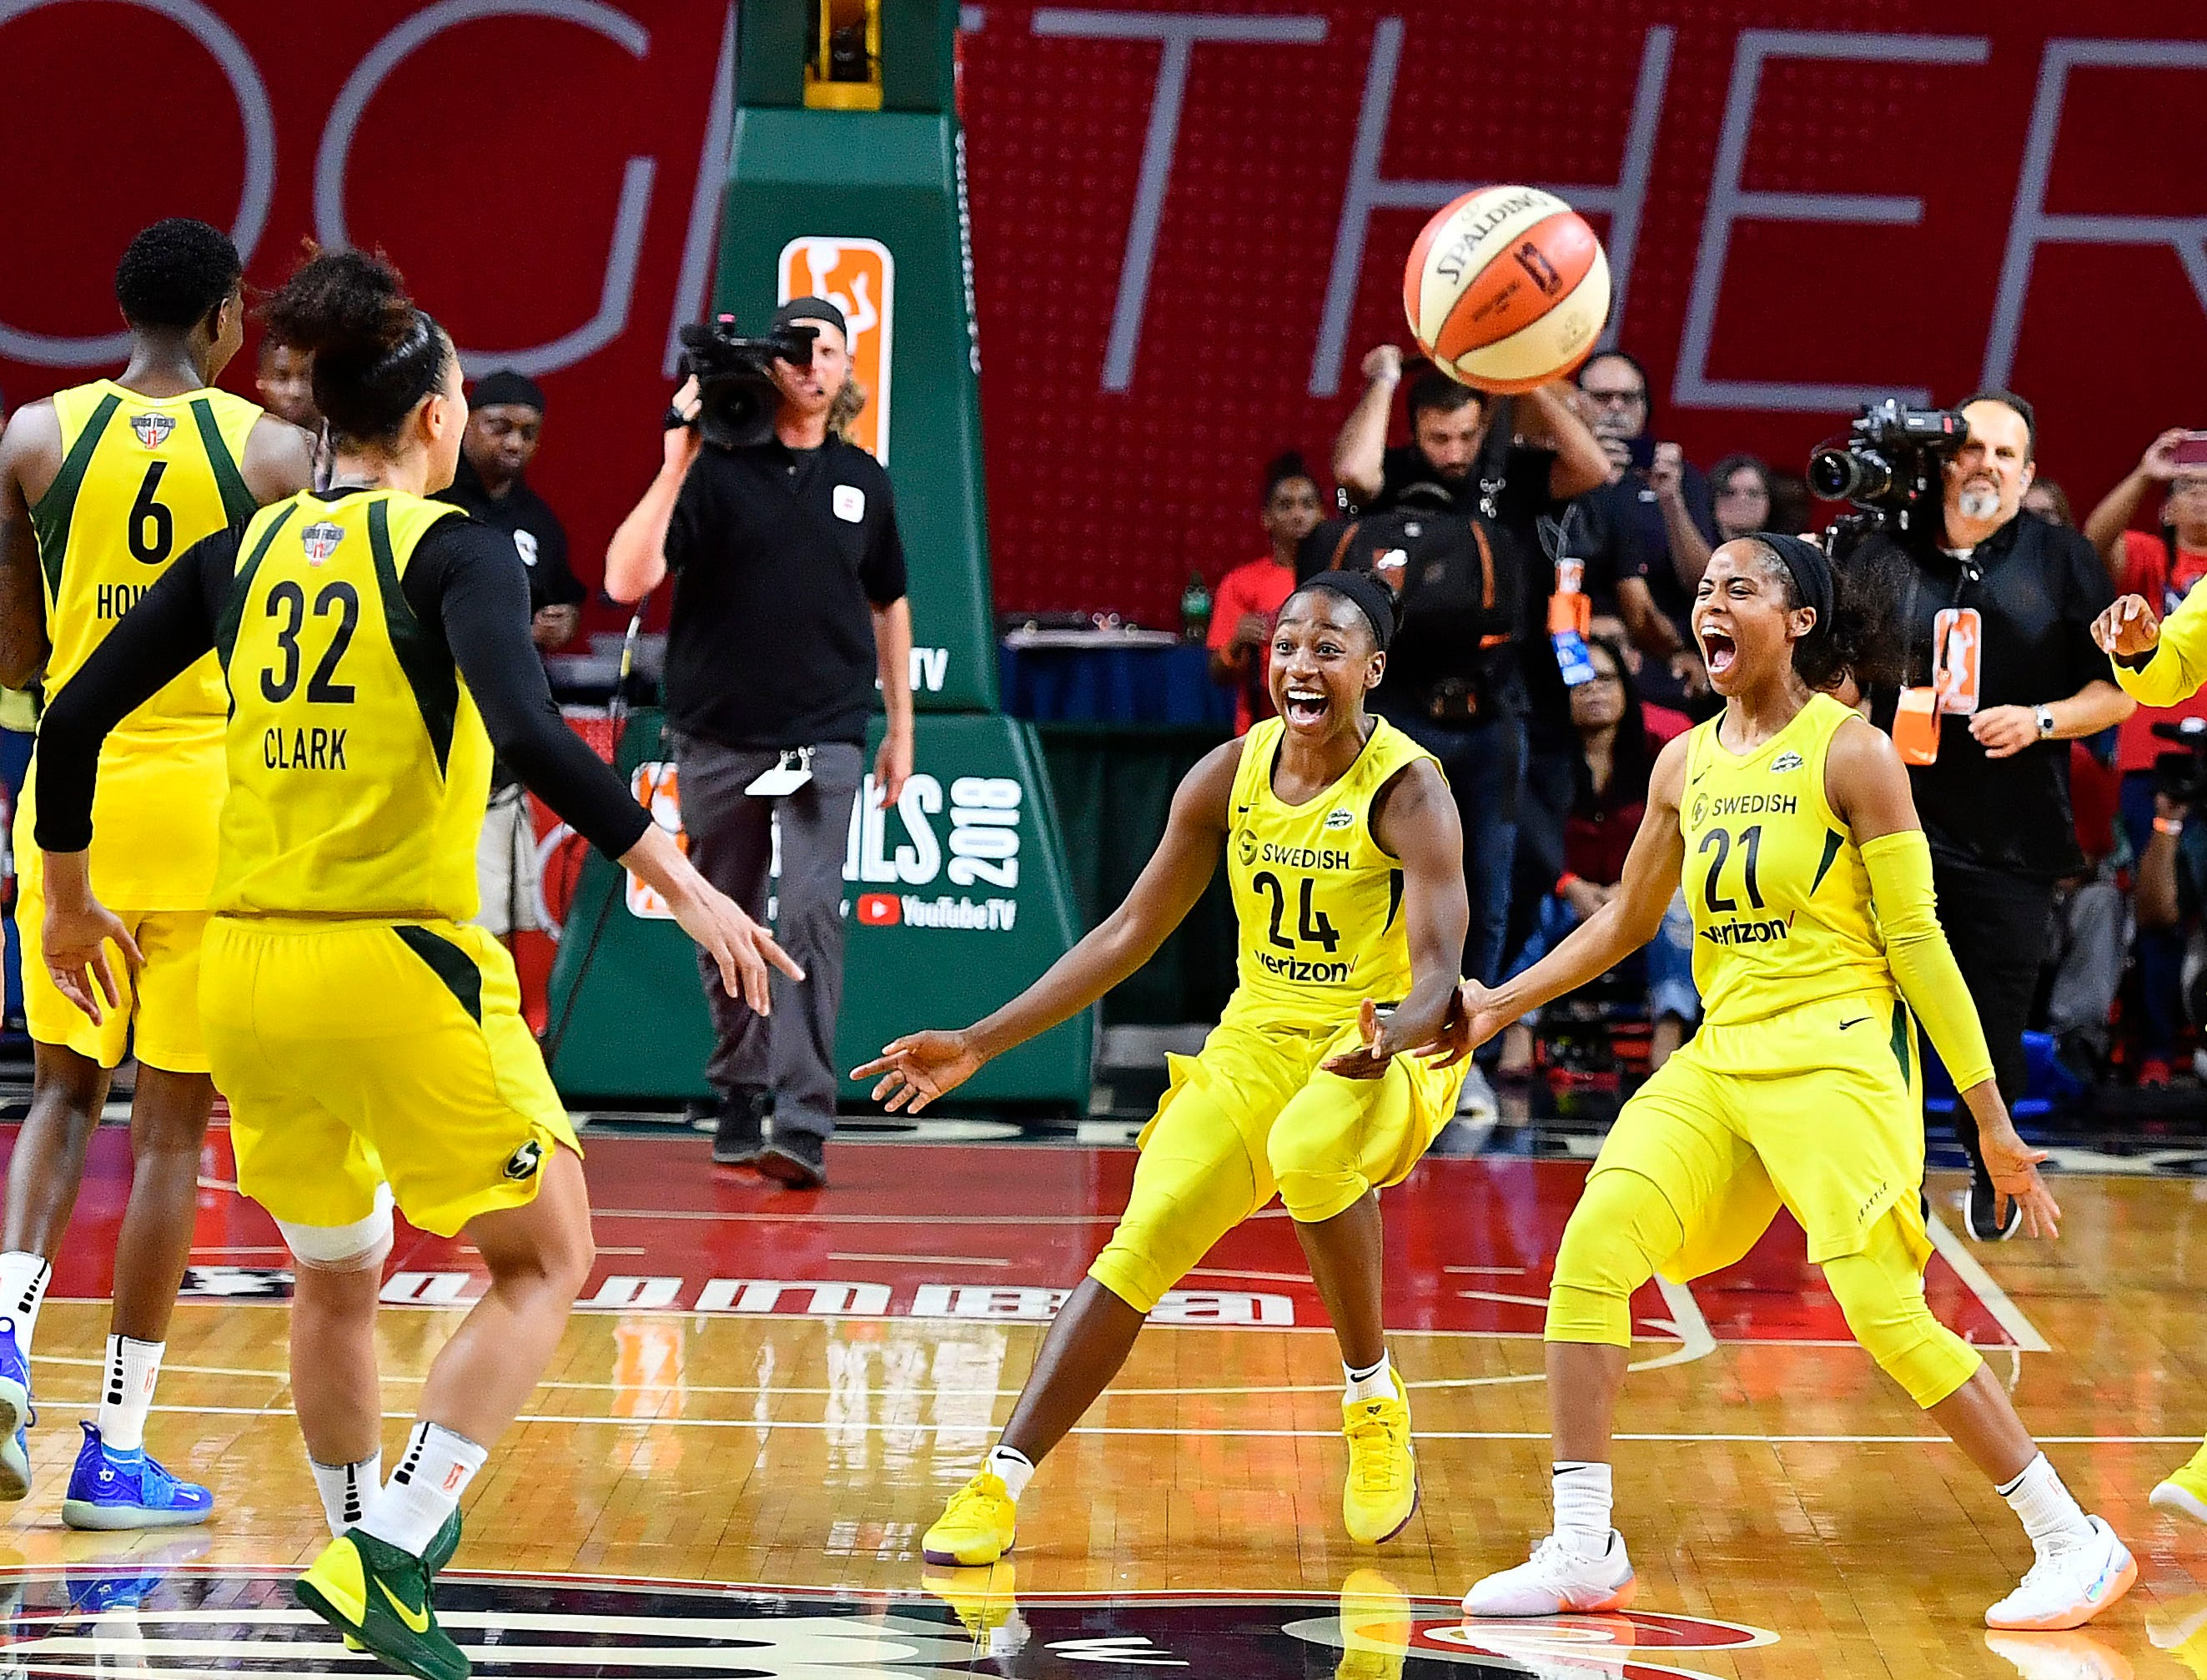 Sept. 12: The Seattle Storm celebrate after defeating the Washington Mystics in Game 3 of the WNBA Finals to win the title.